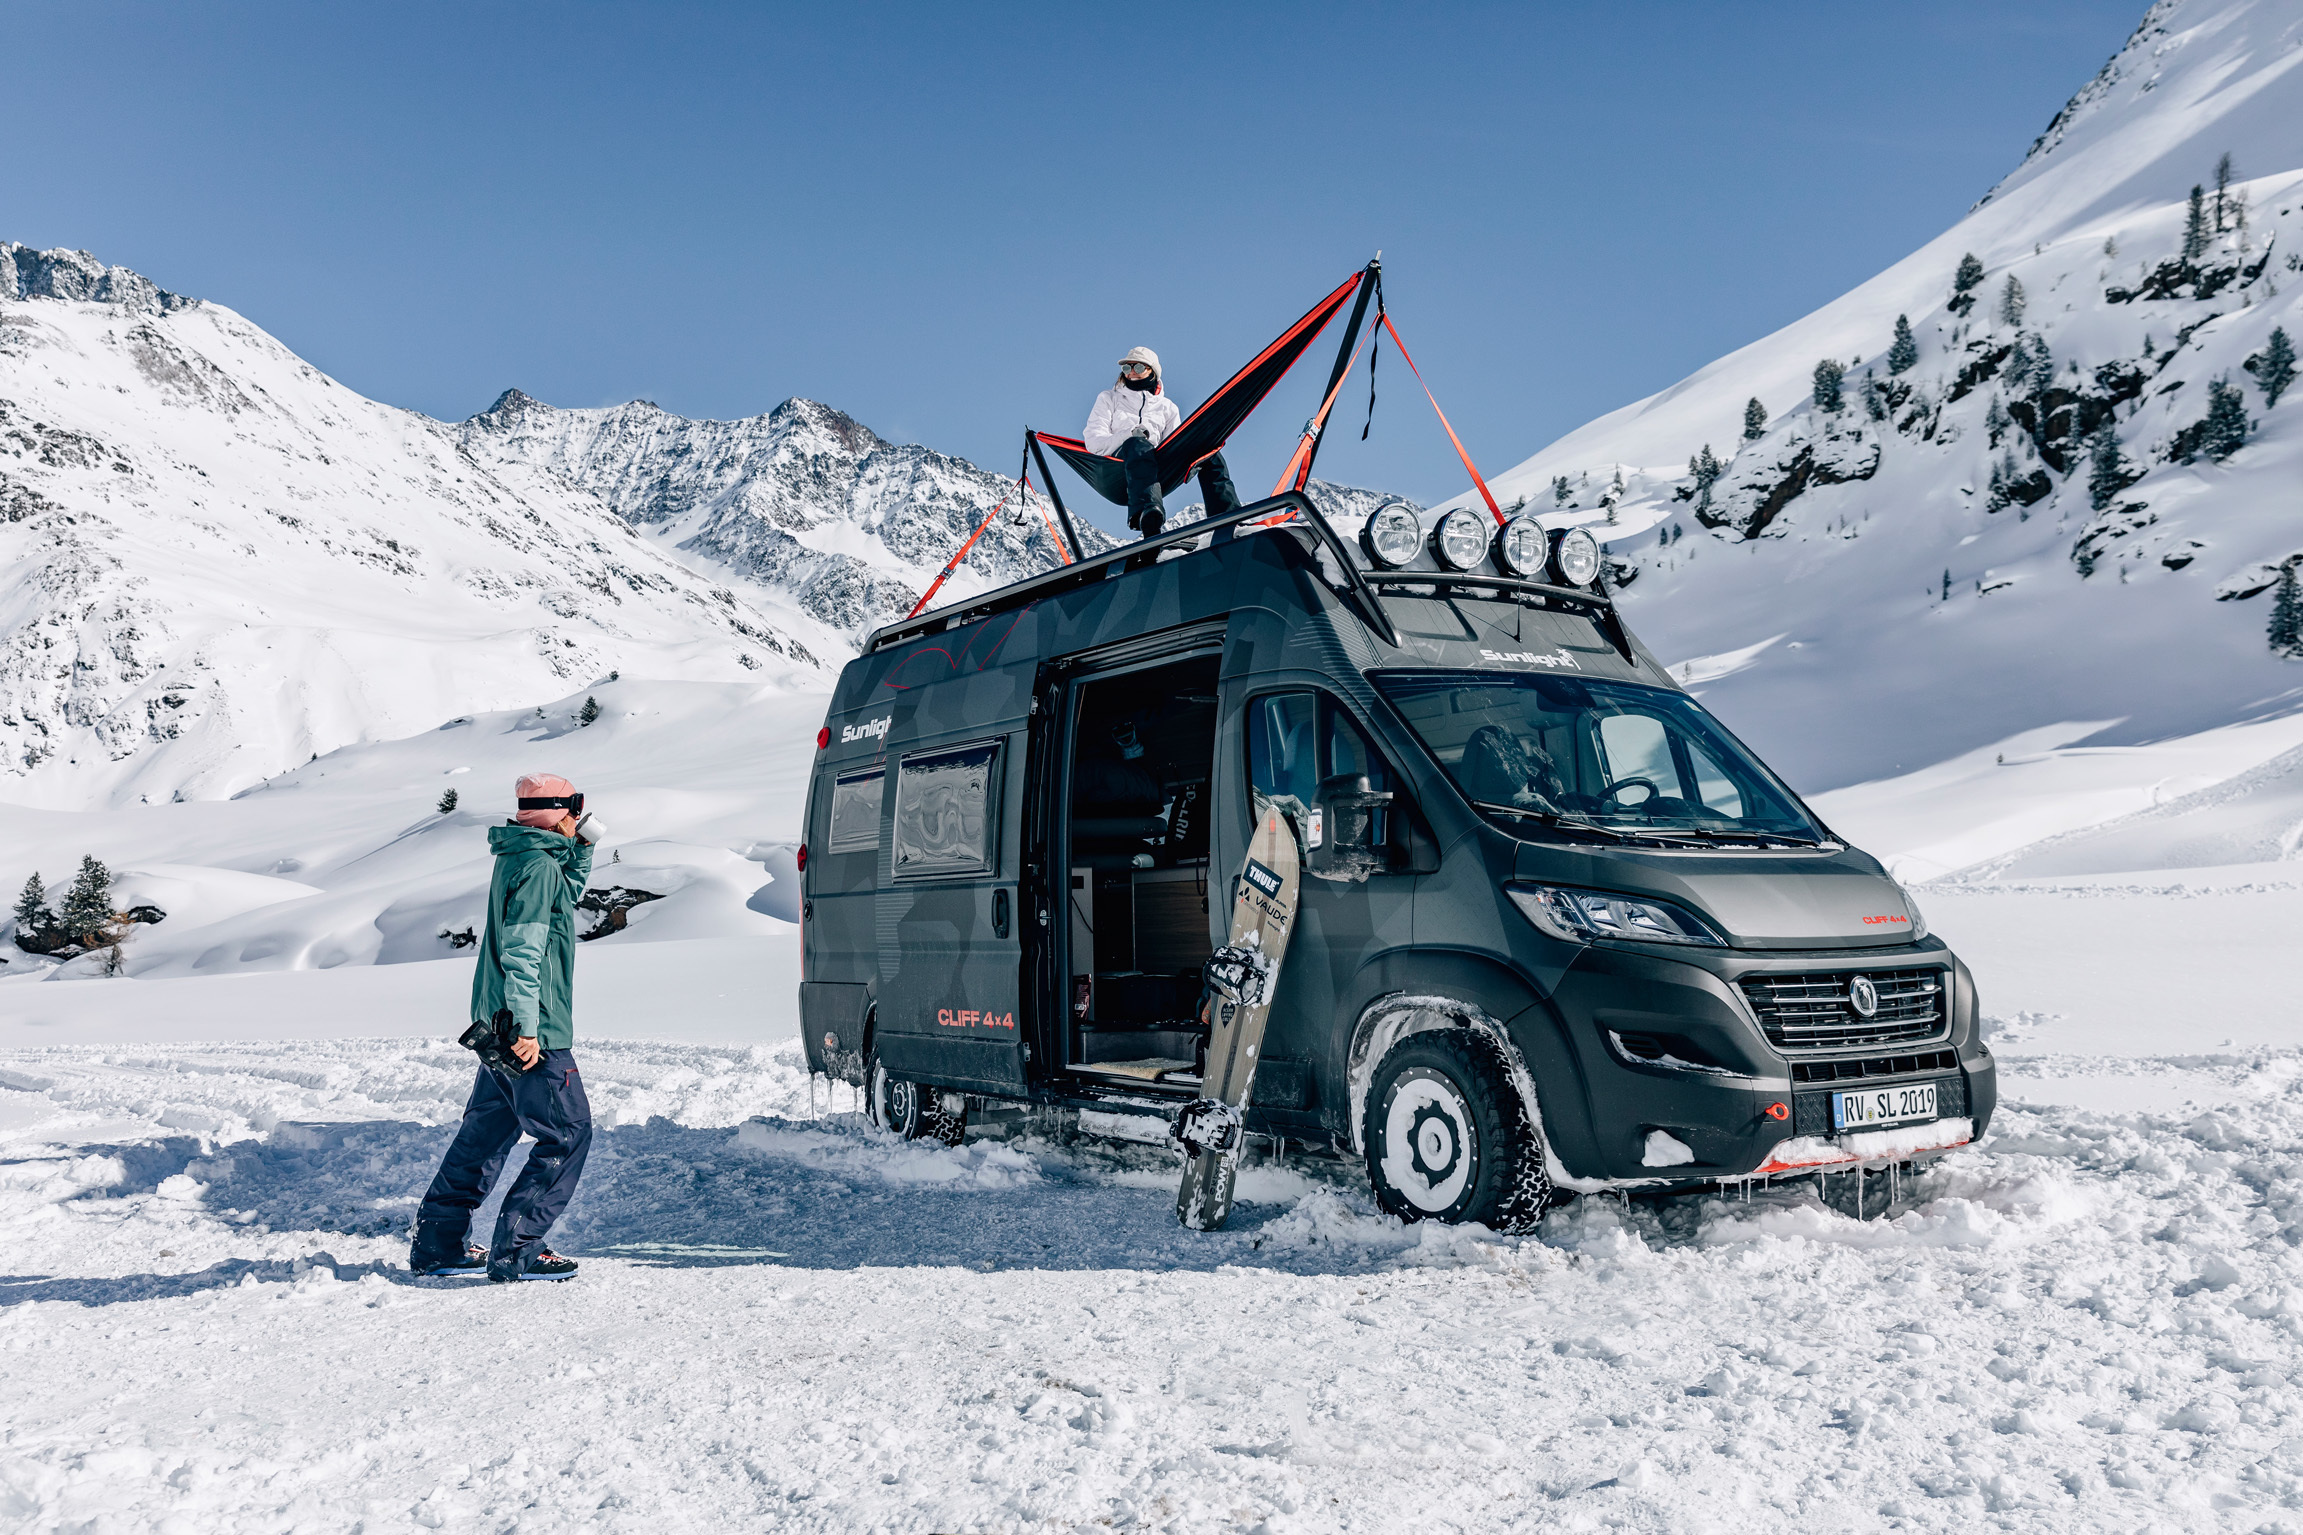 A gray camper van sits in a snowy valley below mountains and a blue sky. The side door of the van is open with a snowboard standing next to it; one person in snow gear is walking towards the van and another person sits on the roof in a hammock.